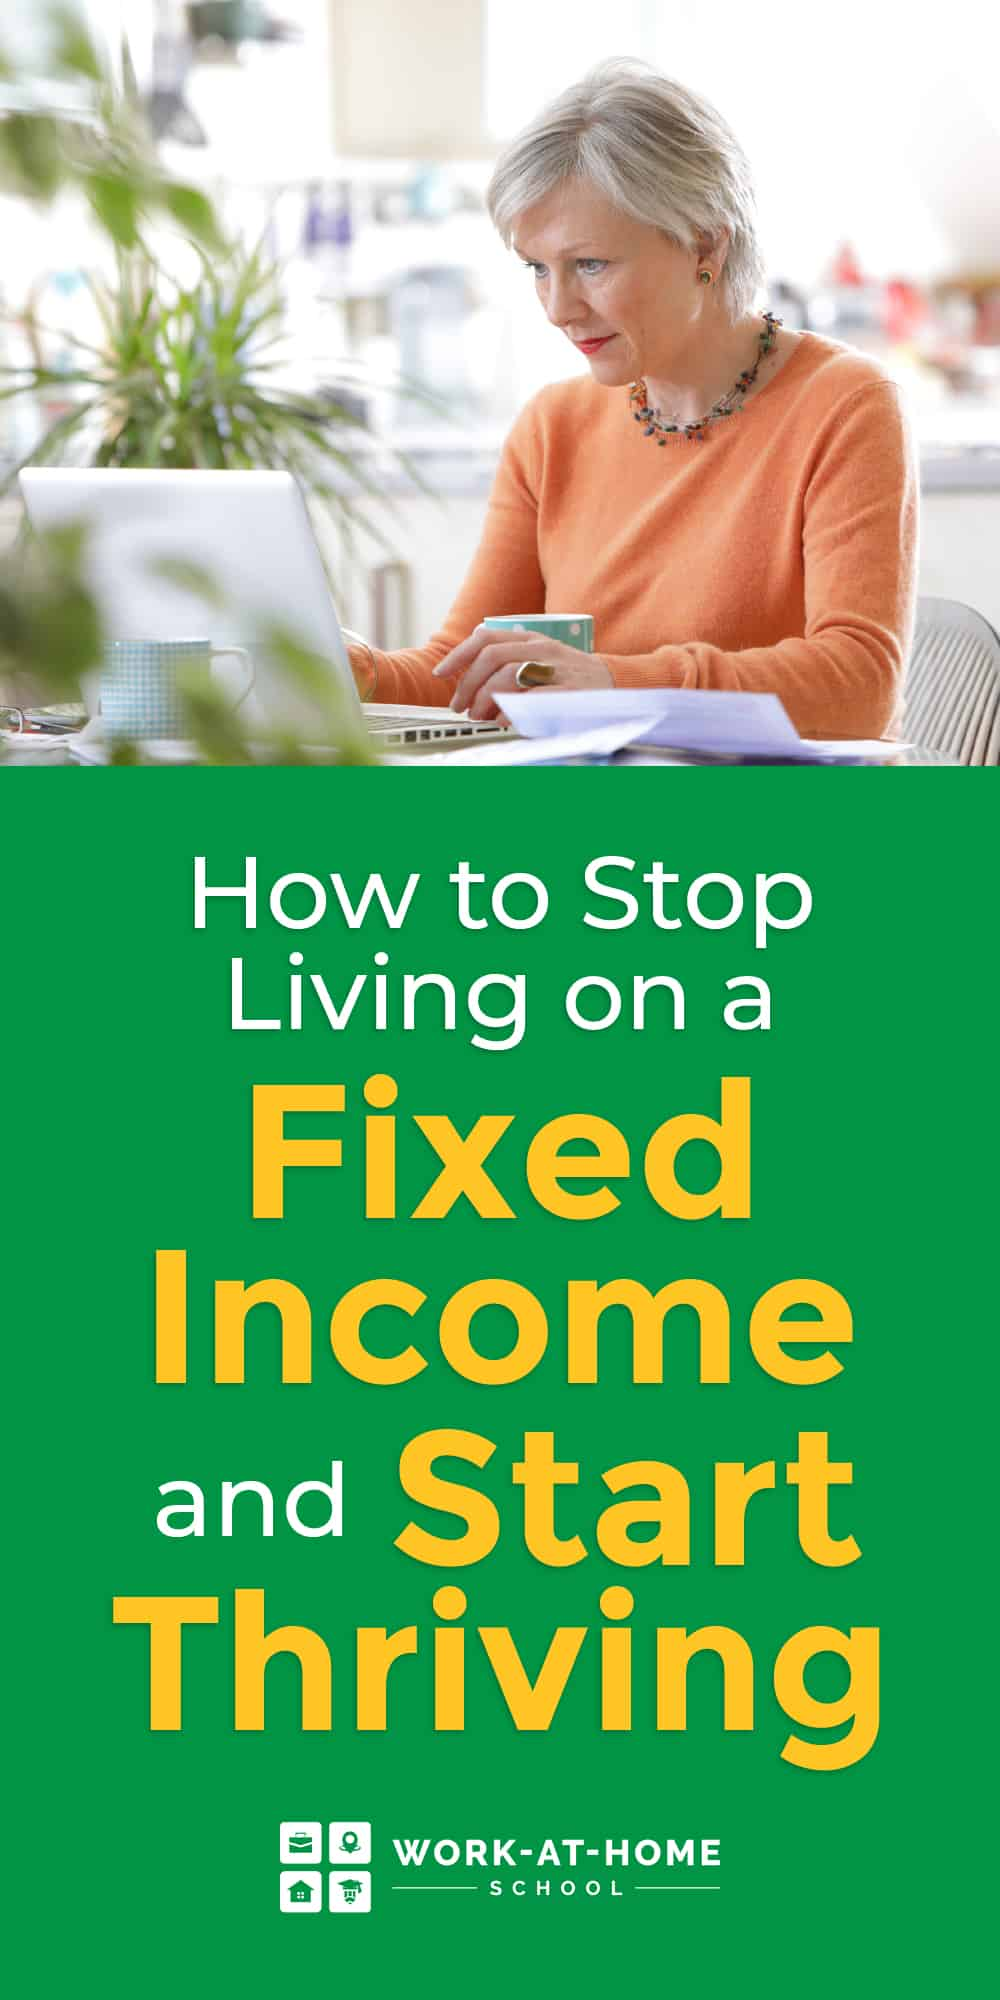 You don't have to stay living on a fixed income forever!